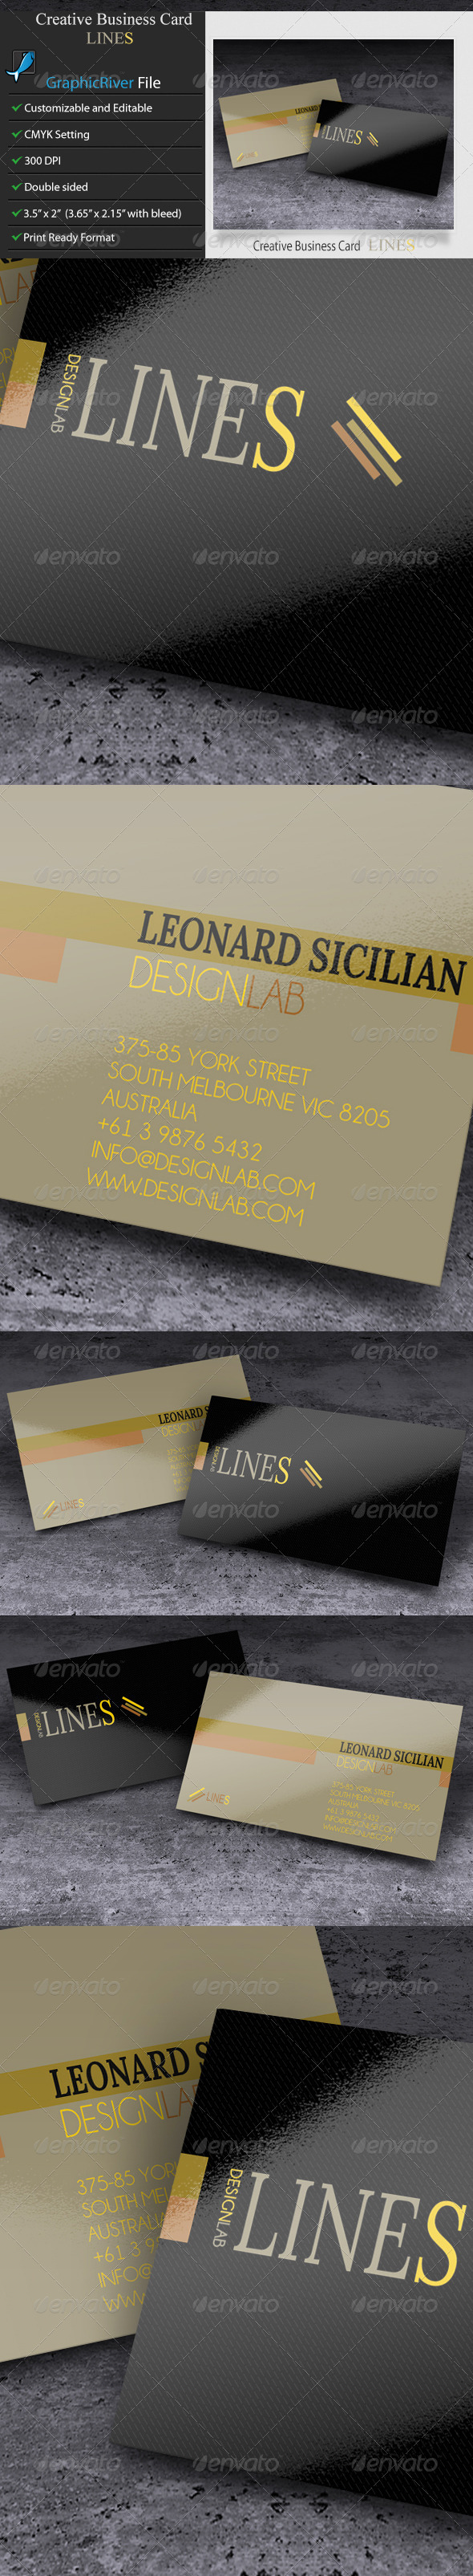 GraphicRiver Creative Business Card Lines 5896639